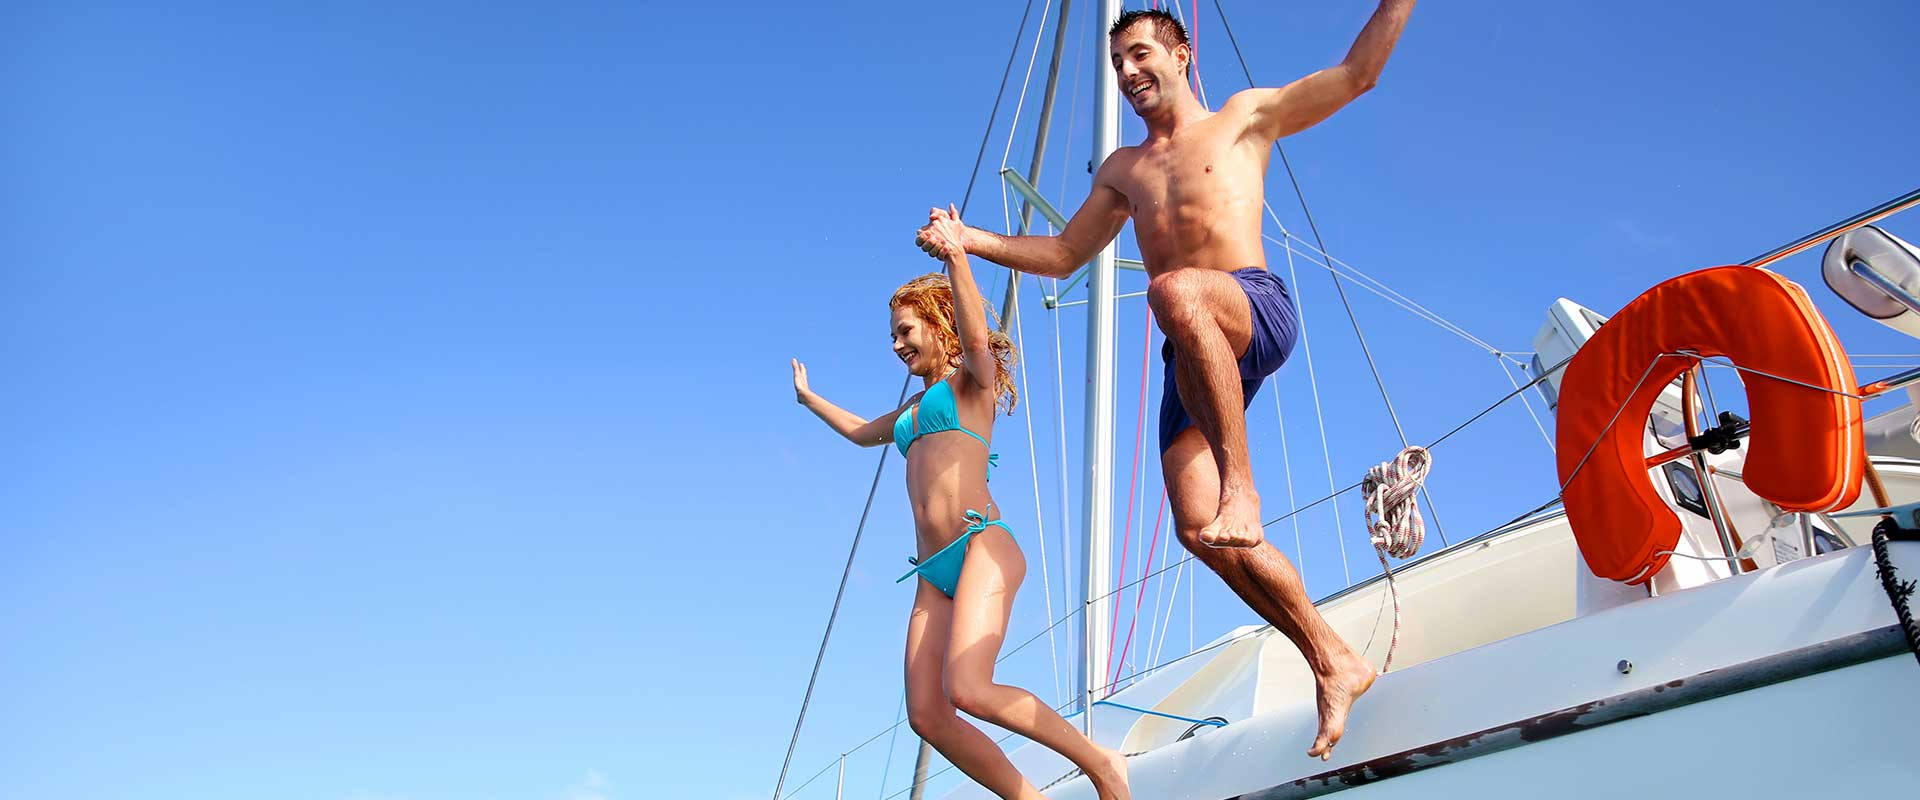 jumping from yacht